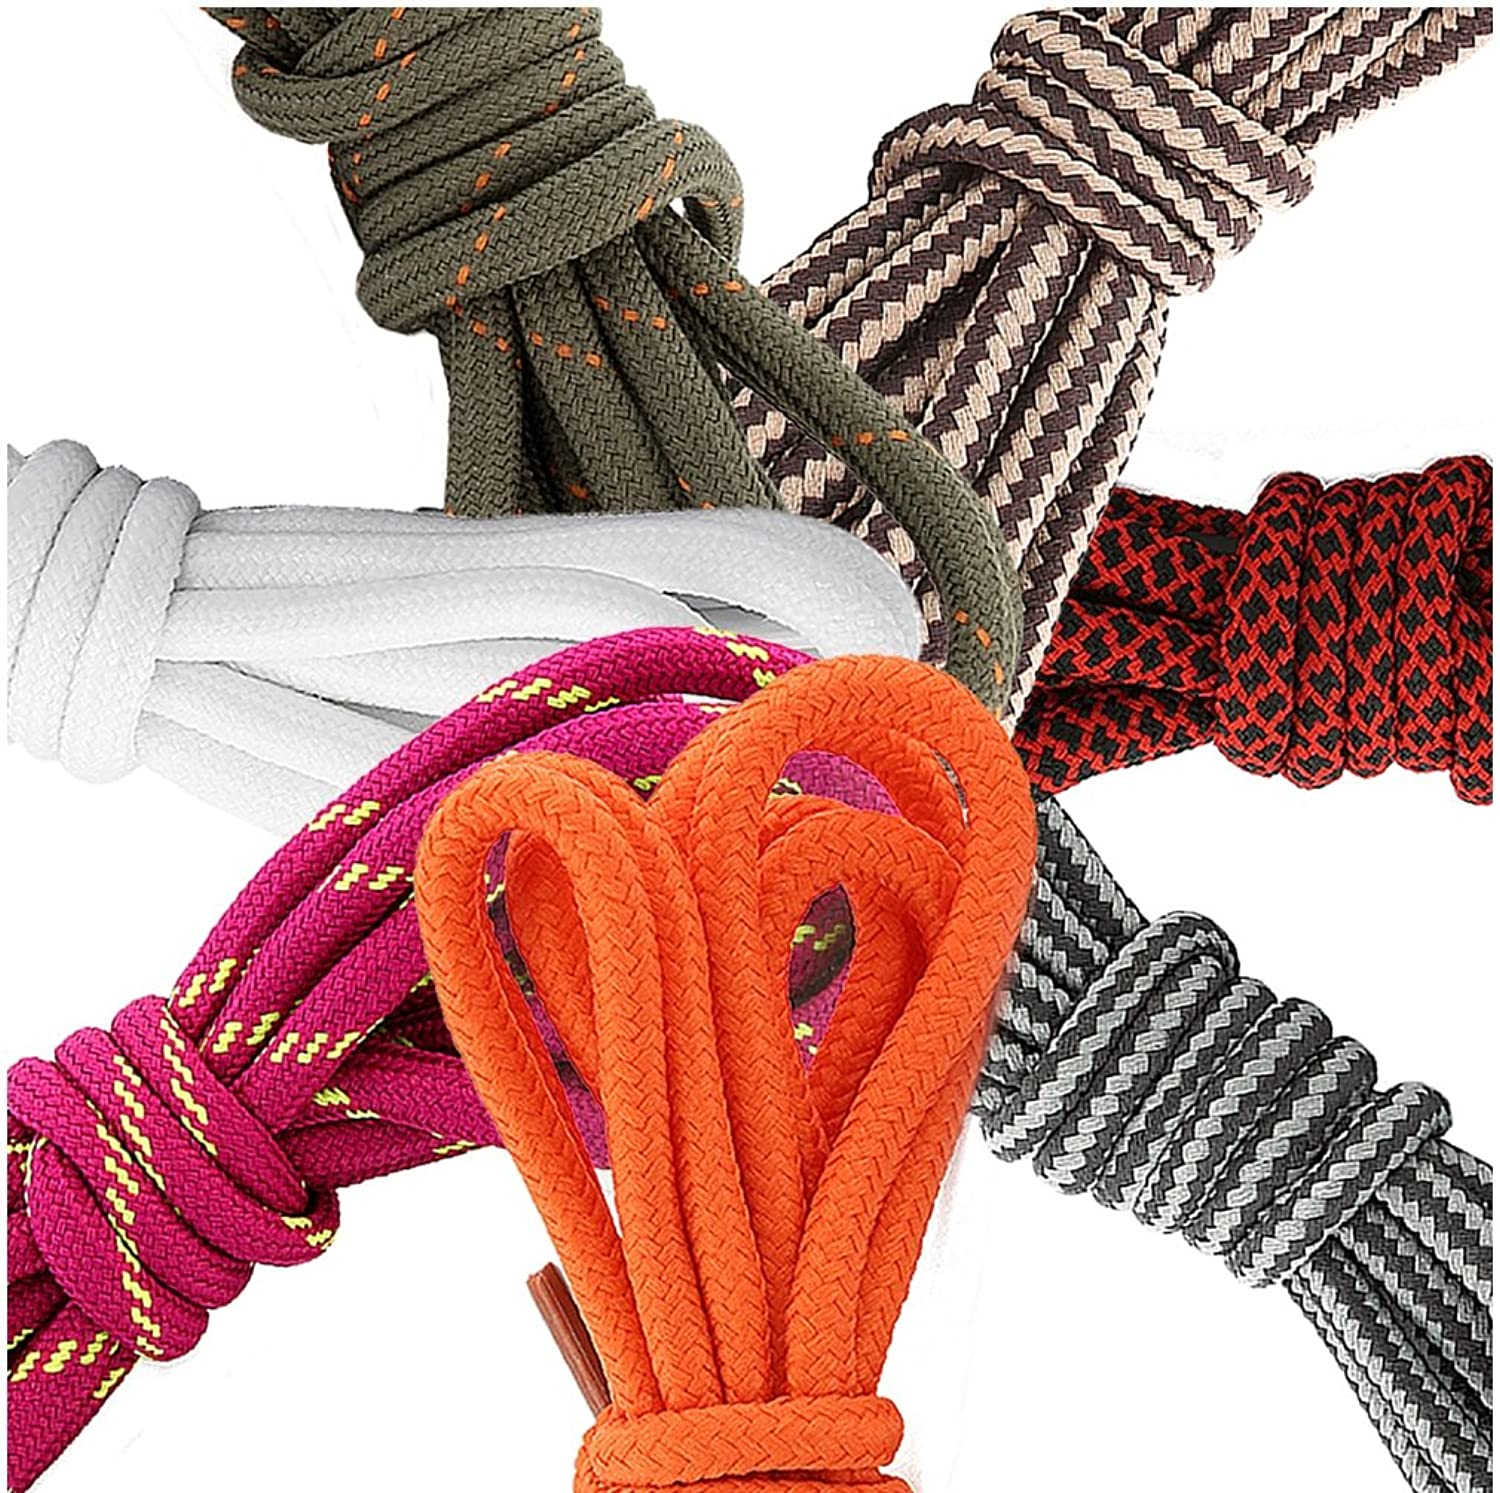 (7 PACK PAIRS) DailyShoes Round Hiking Shoelaces, Strong Durable, Becoming Malaki